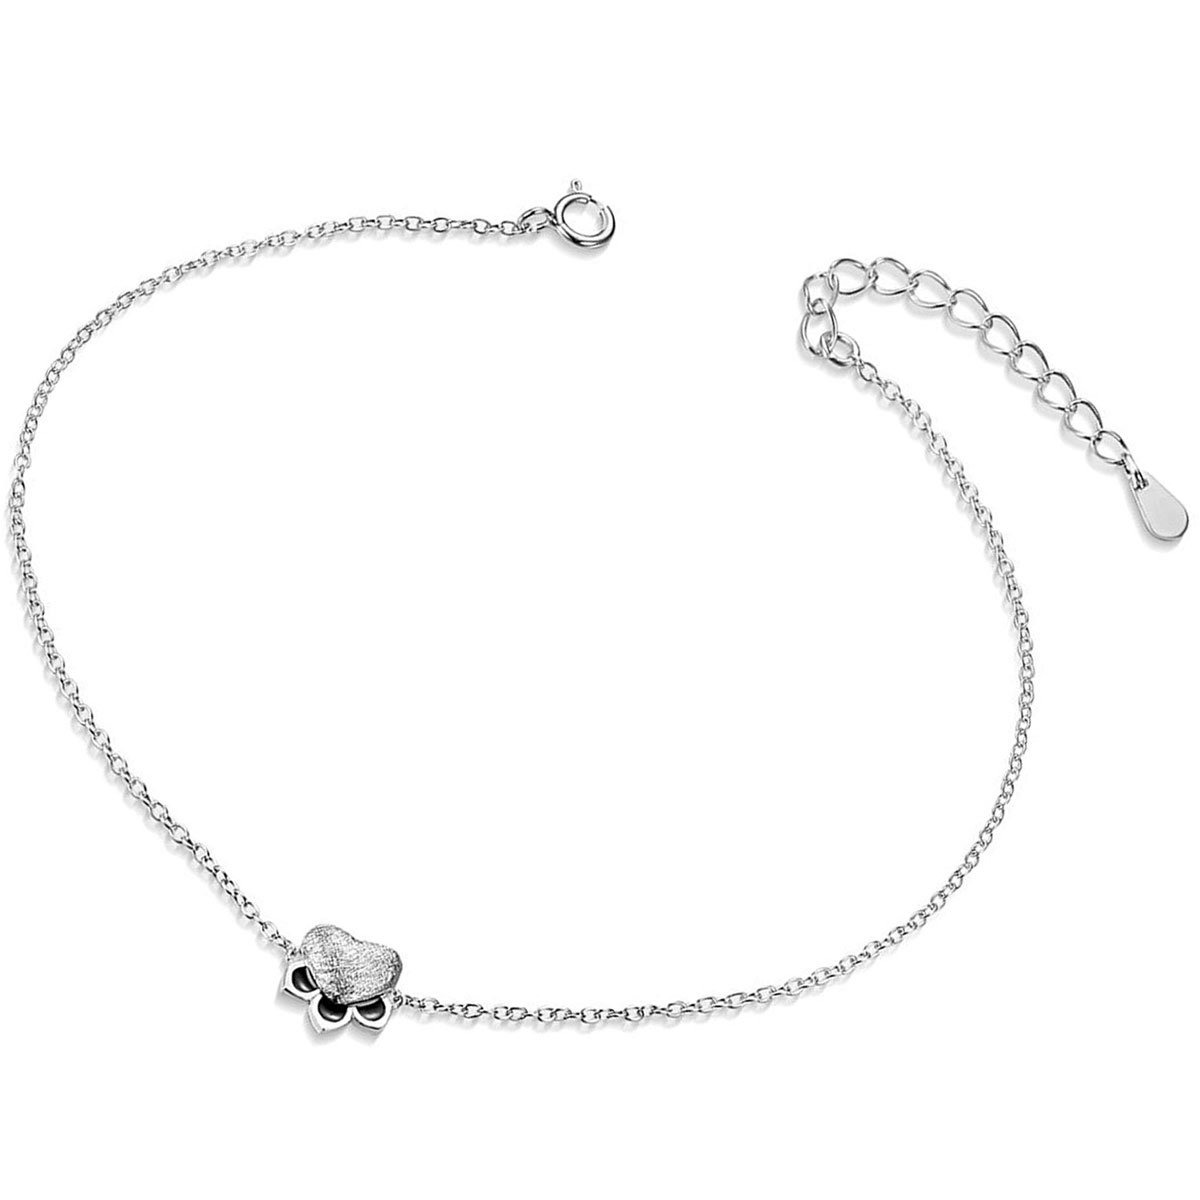 Mmiiss Paw Print Charm Anklet for Women S925 Sterling Silver Adjustable Cat Paw Foot Jewelry